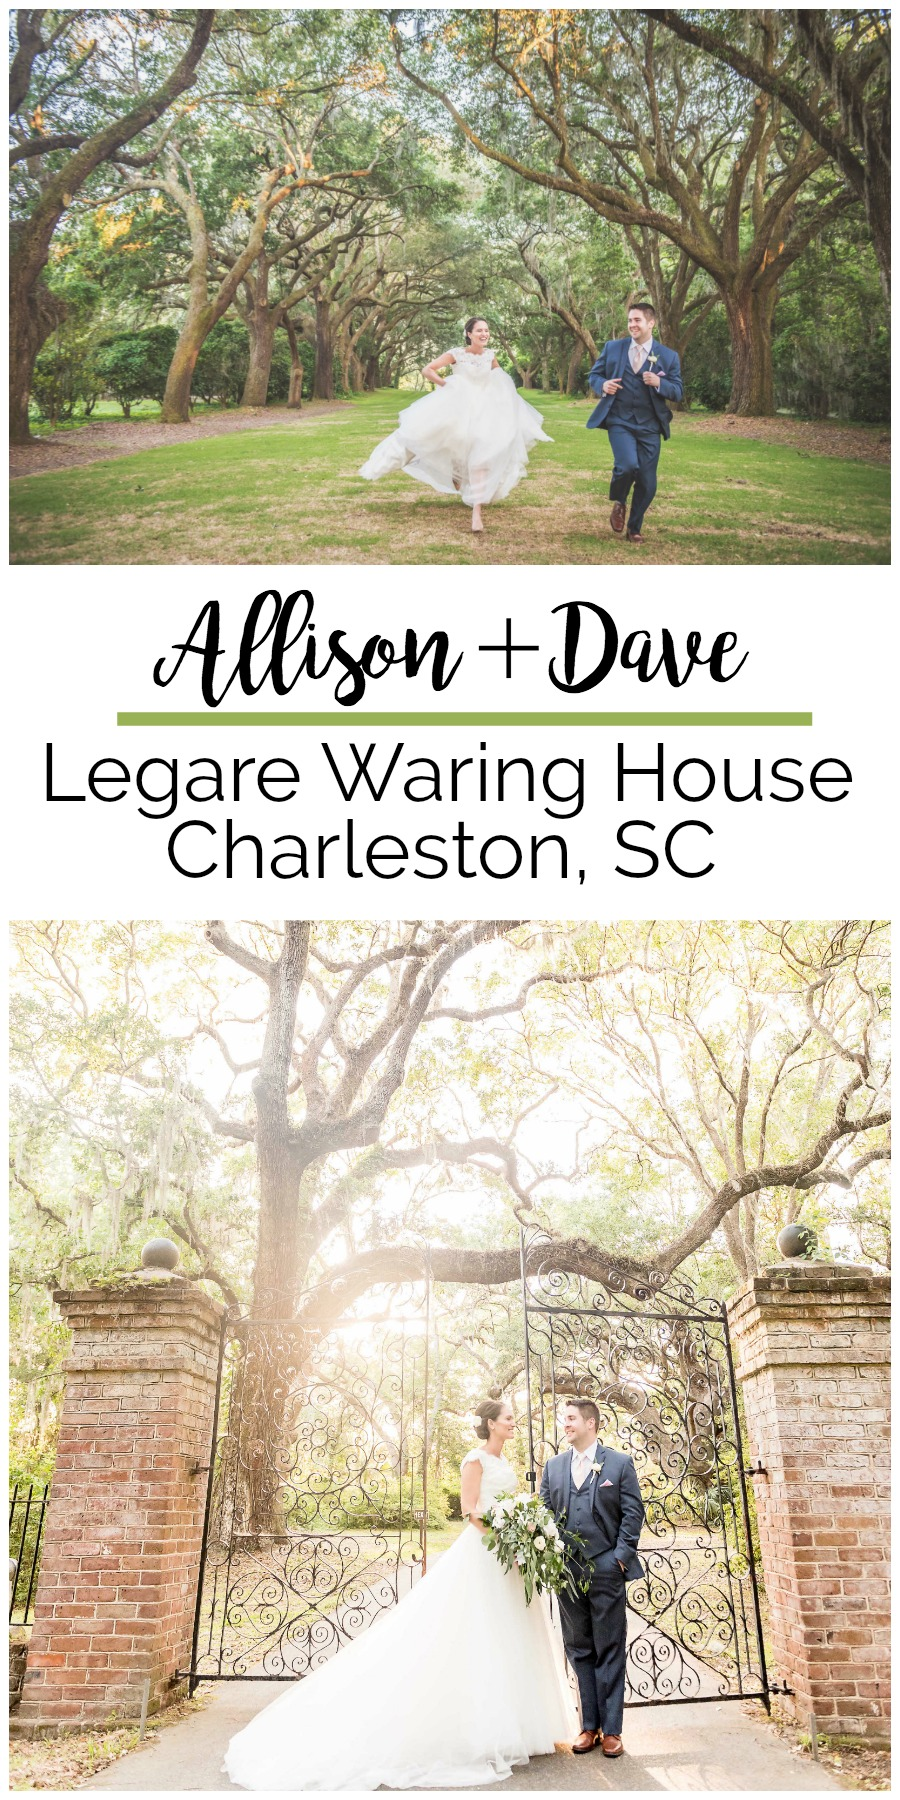 Allison + Dave: Destination Wedding at the Legare Waring House, Charleston, South Carolina | Palmetto State Weddings | Photography by High Cotton Studios